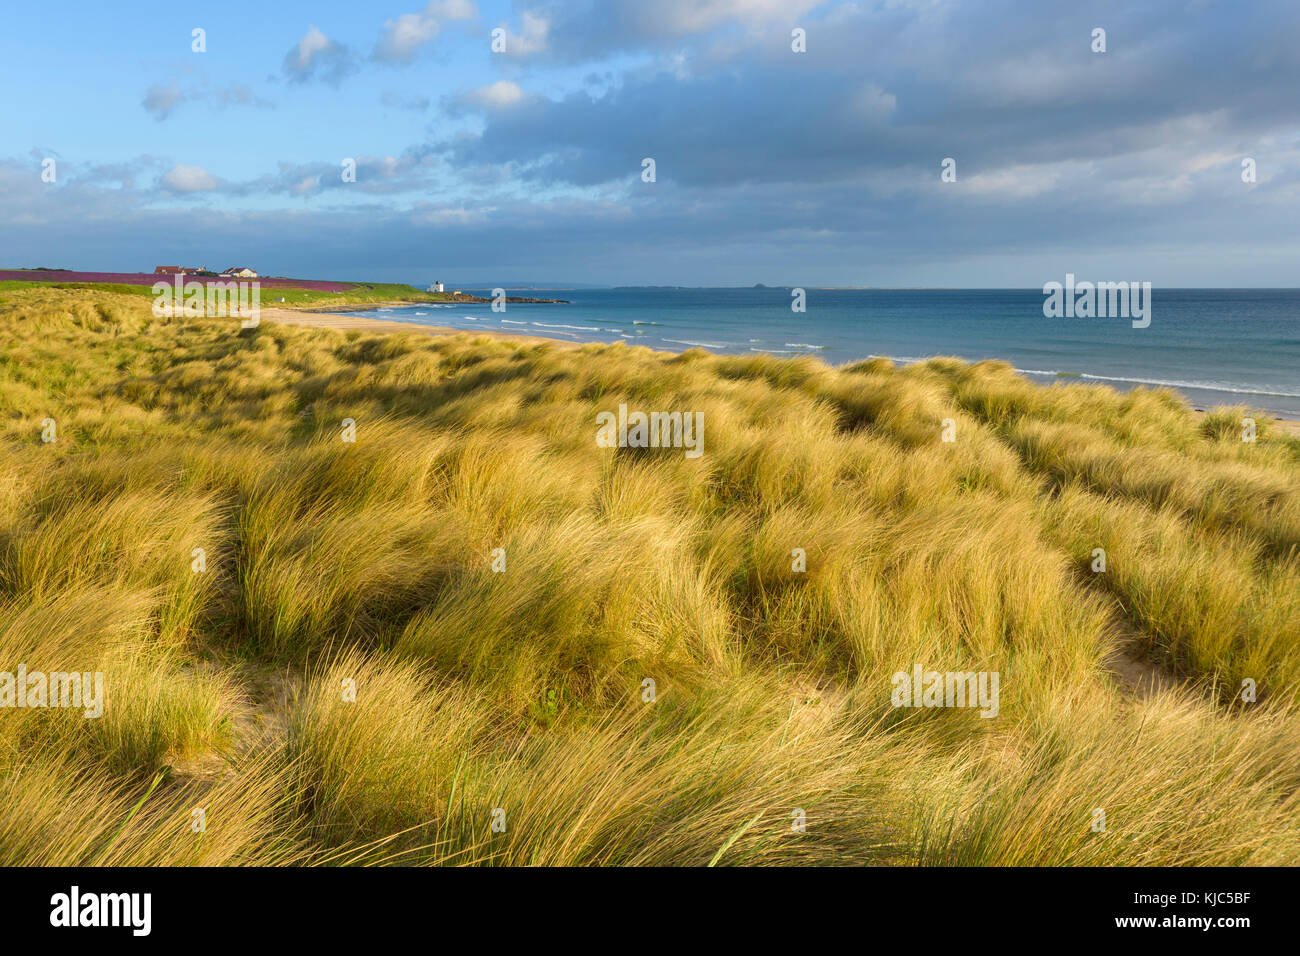 Dune grass along the beach at Bamburgh with the North Sea in Northumberland, England, United Kingdom - Stock Image